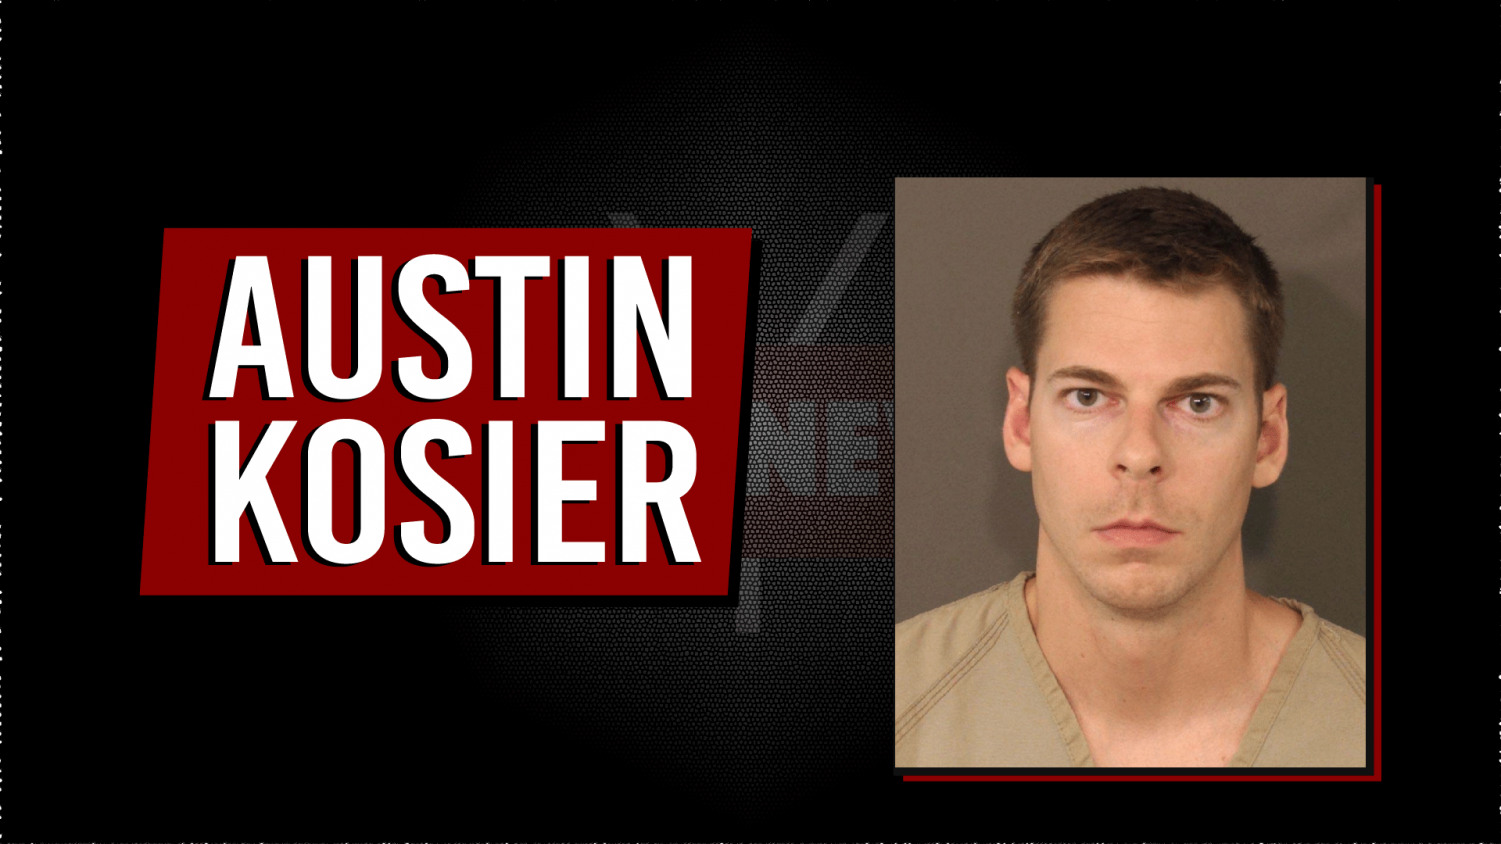 Austin Kosier's booking photo was provided by the Franklin County Sheriff's Office.